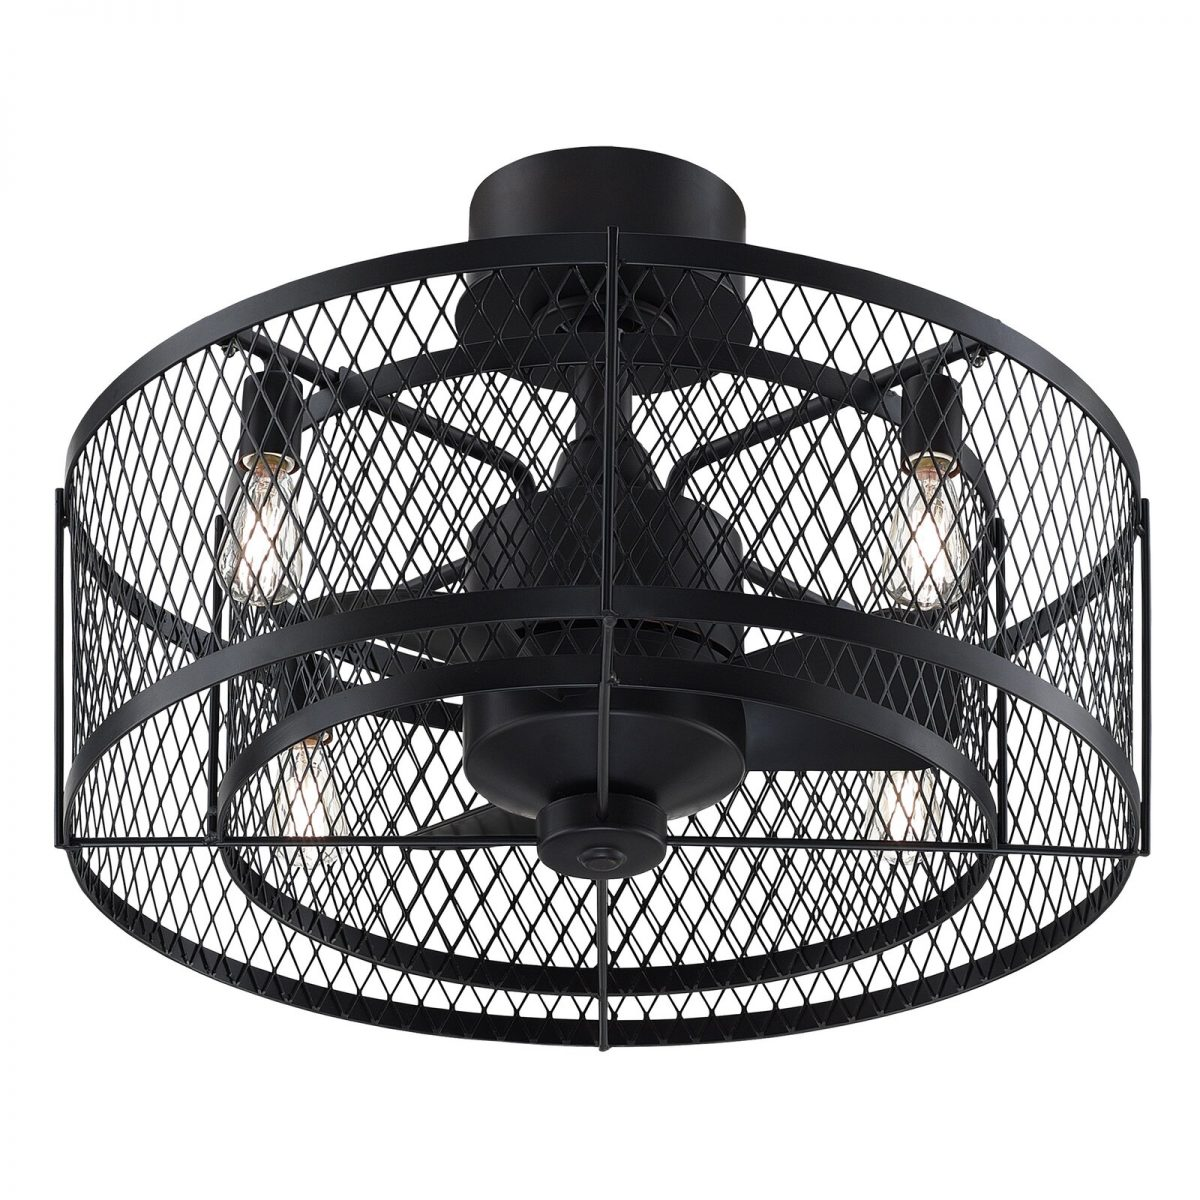 Affordable farmhouse ceiling fan unique metal rustic compact fan with remote color black